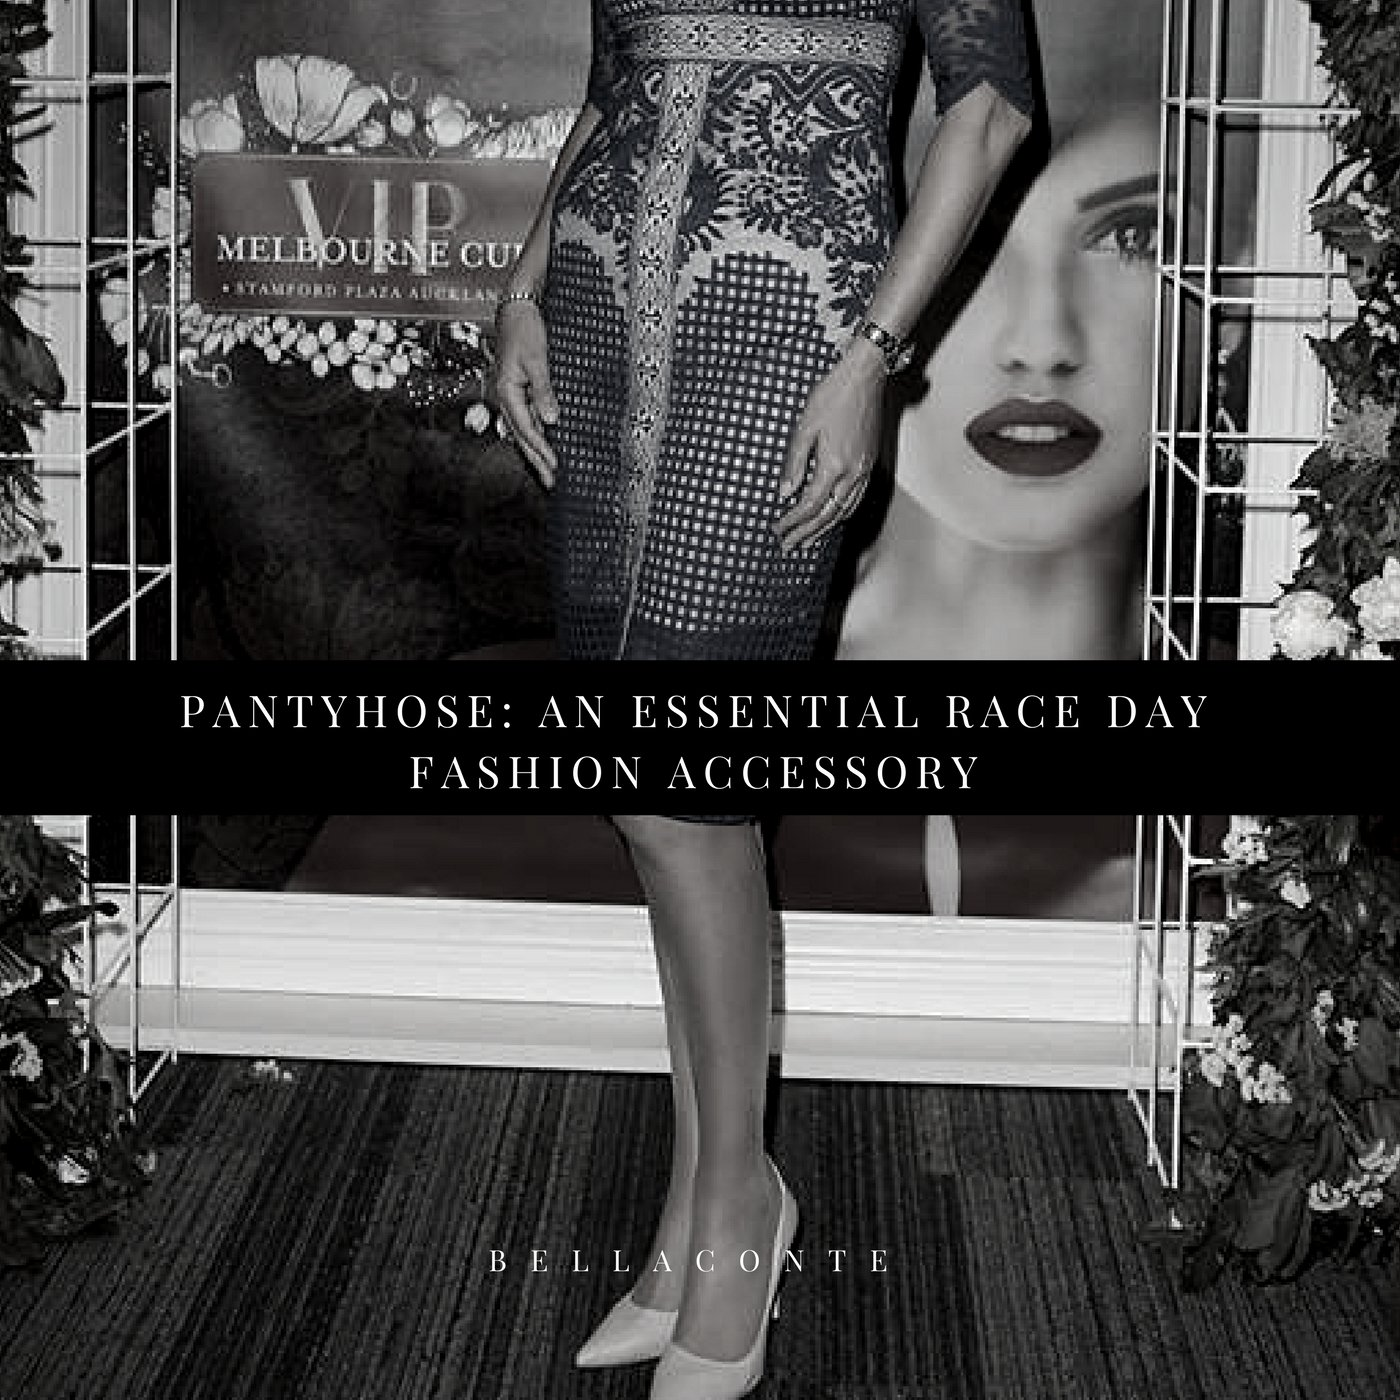 Pantyhose: An Essential Race Day Fashion Accessory